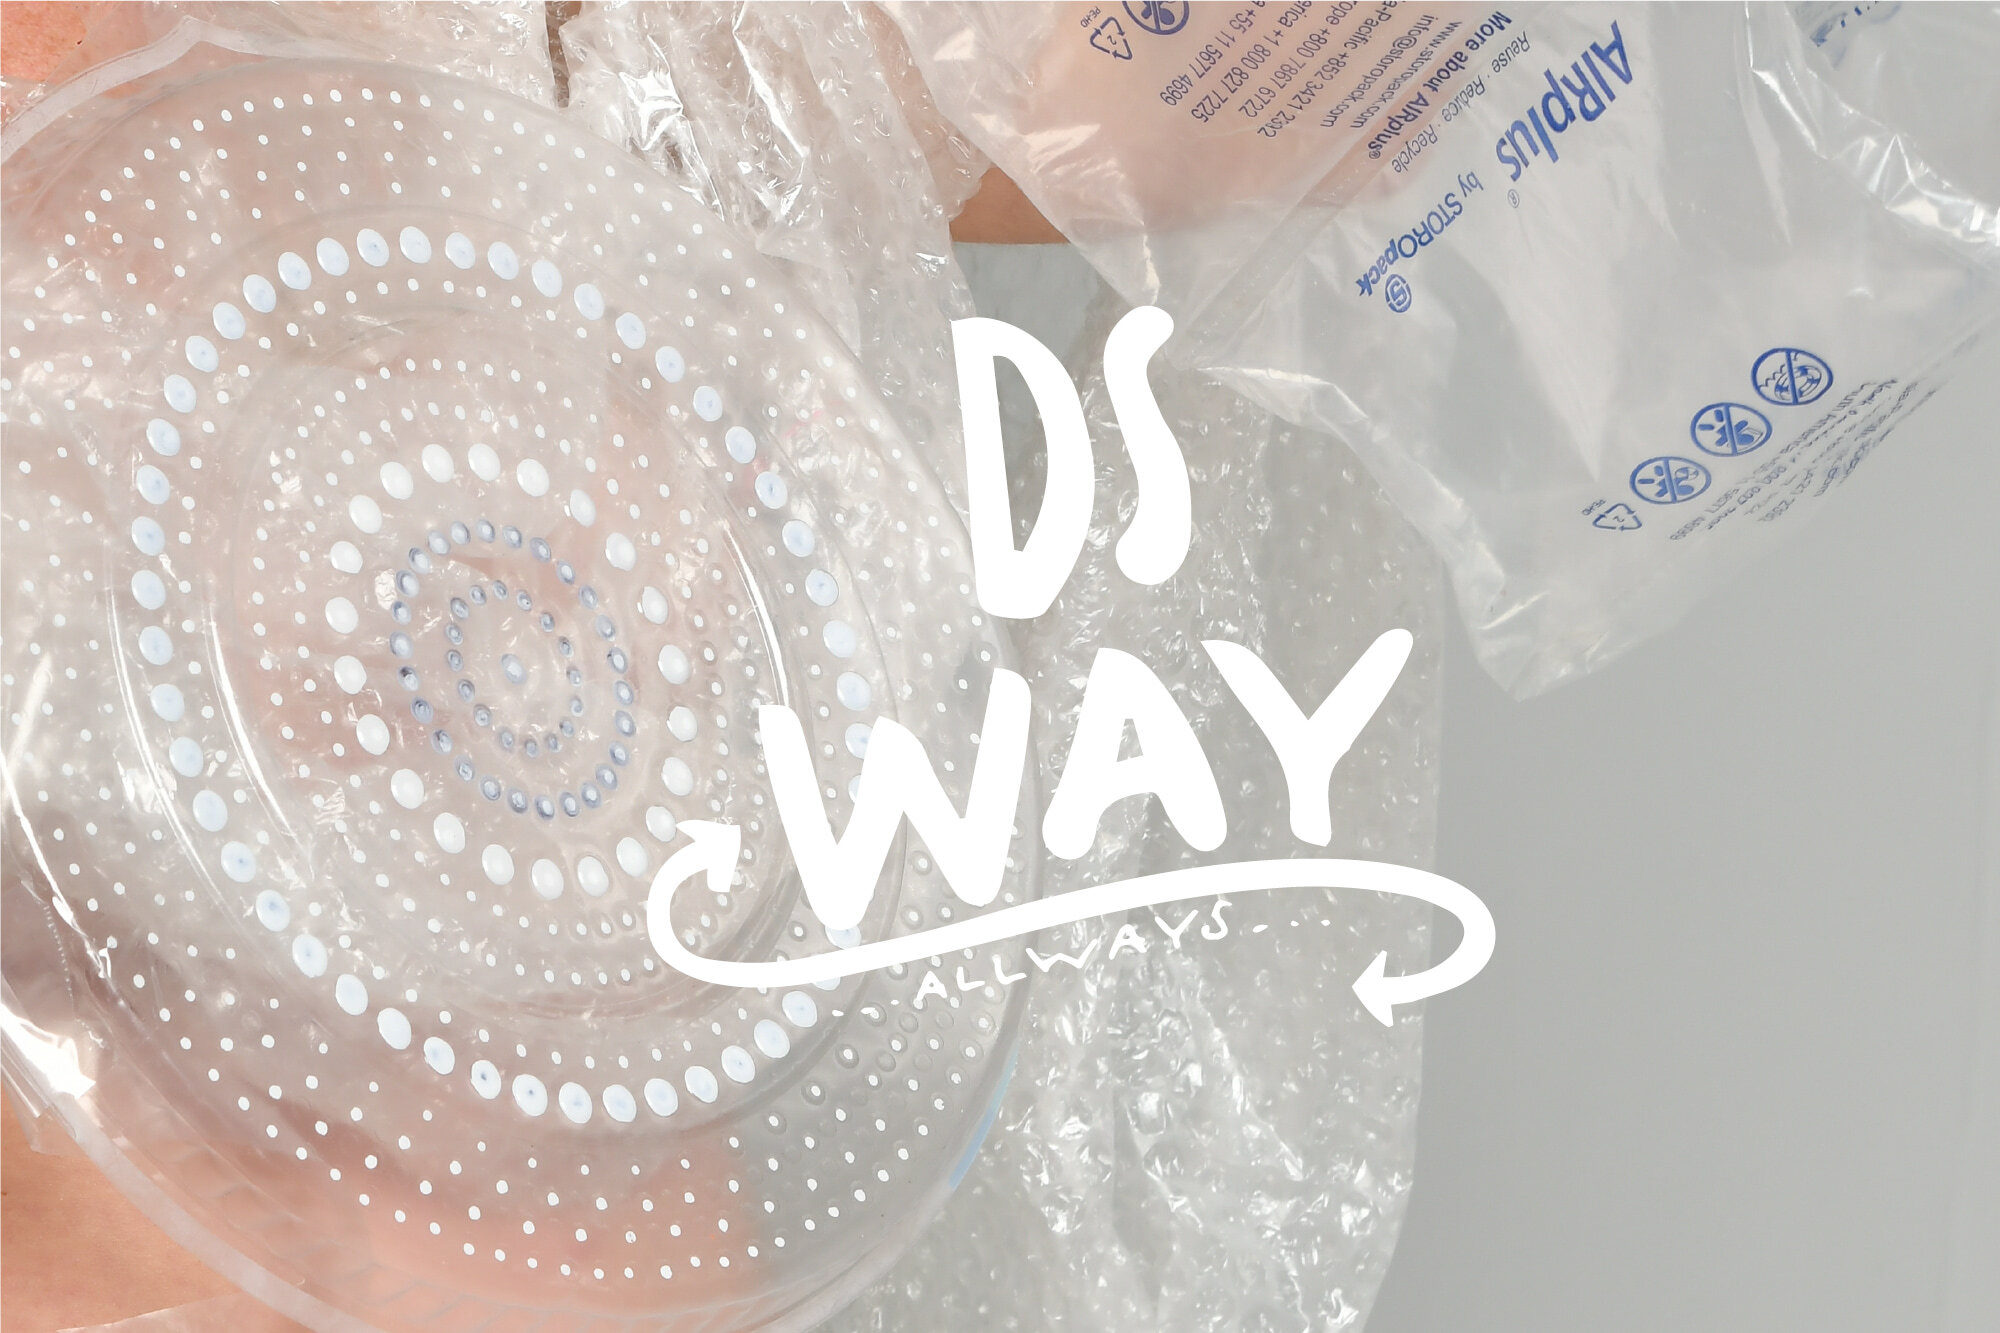 dsway featured (1)